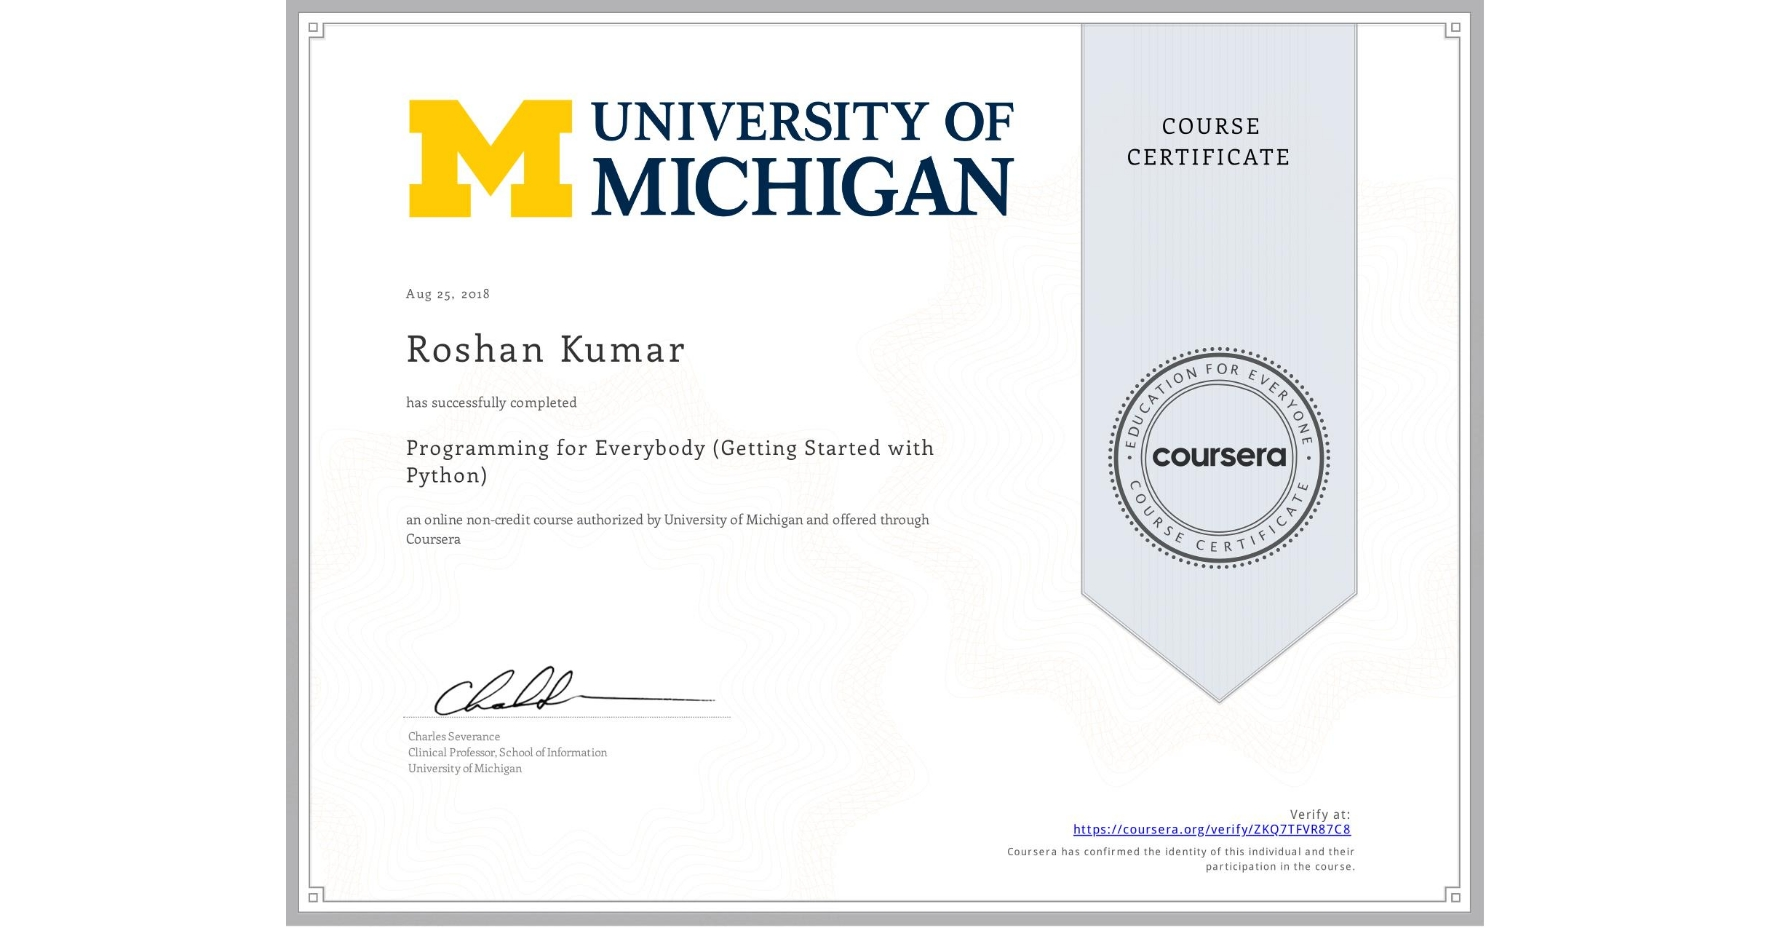 View certificate for Roshan Kumar, Programming for Everybody (Getting Started with Python), an online non-credit course authorized by University of Michigan and offered through Coursera